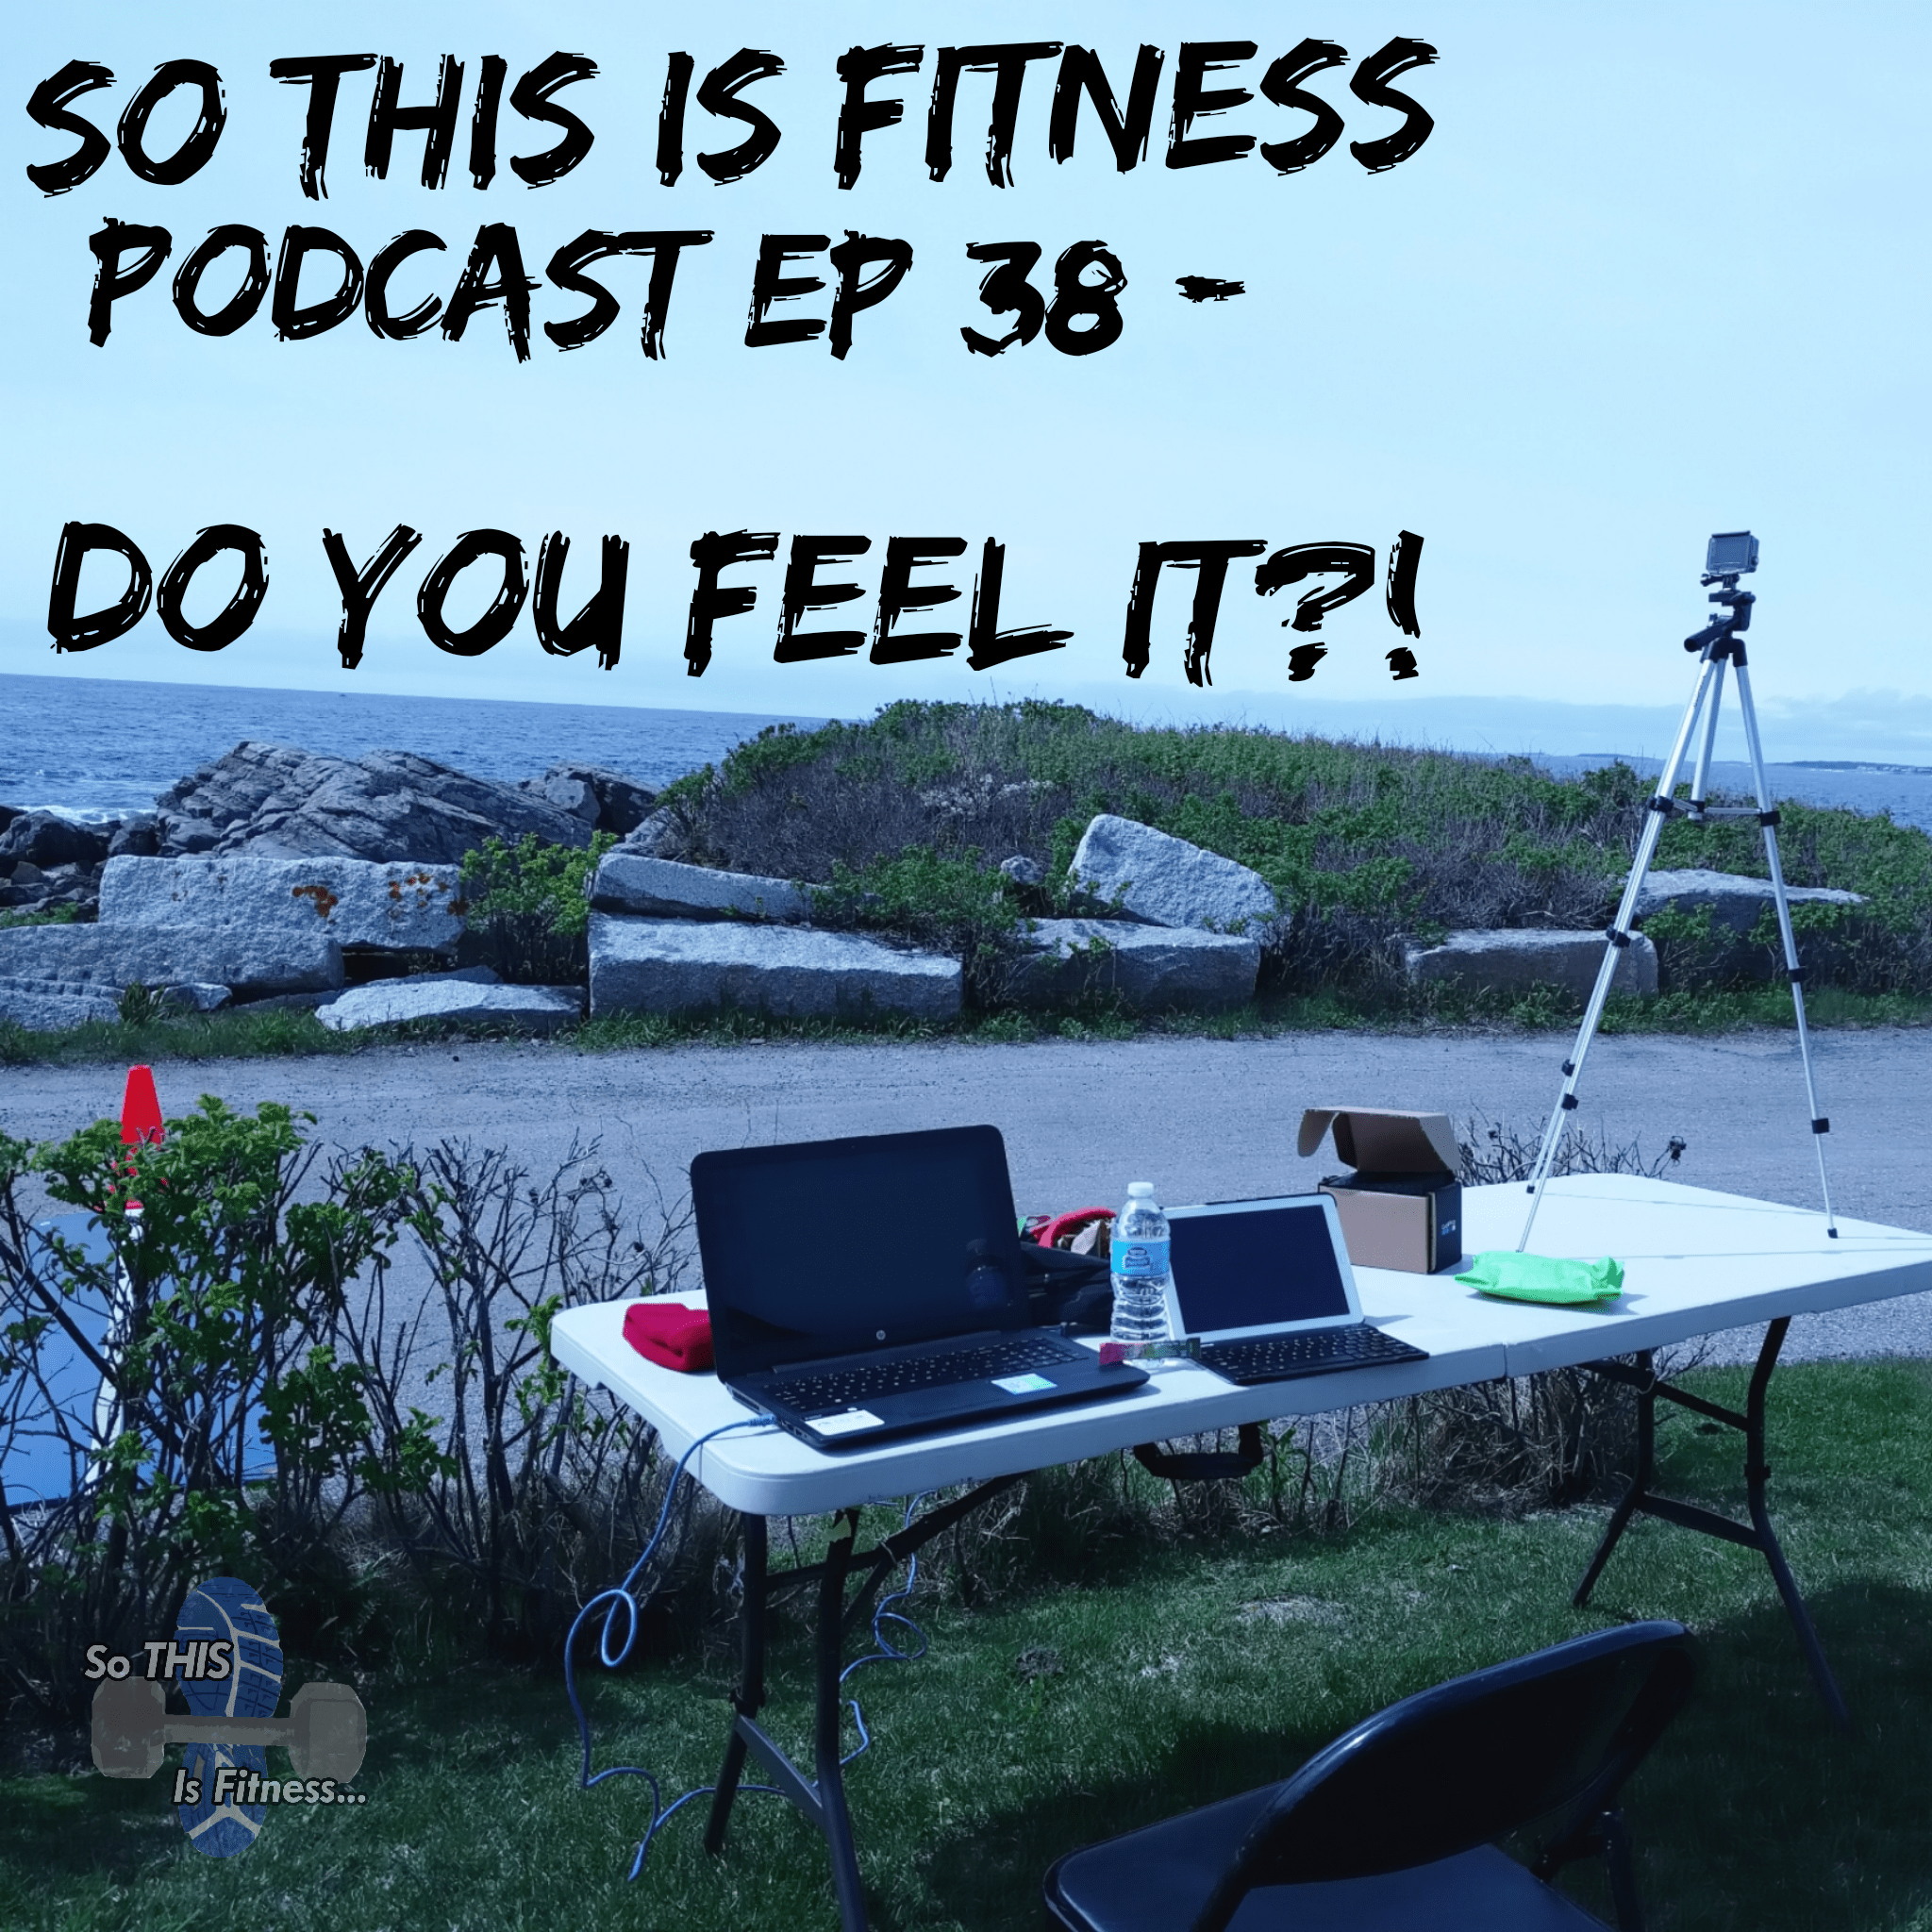 do you feel it? podcast 38